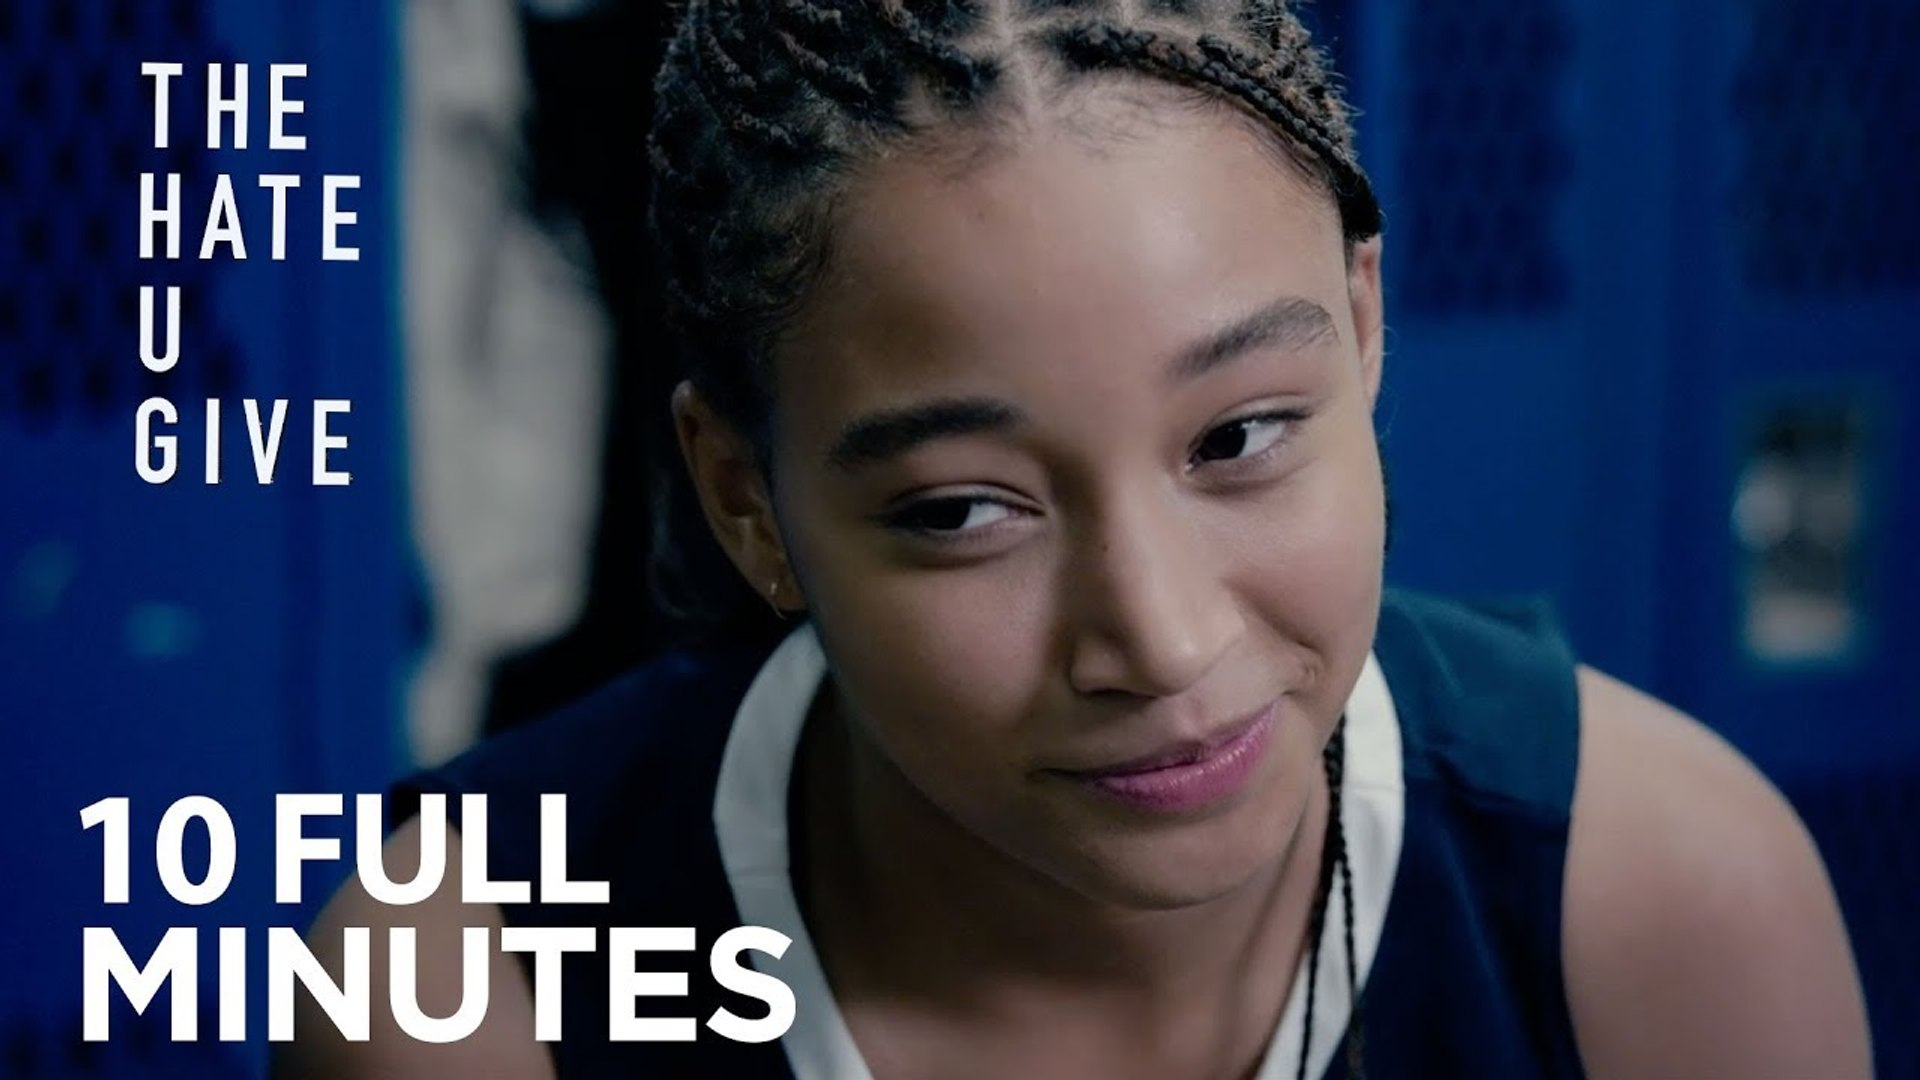 The Hate U Give | Extended Preview - Watch 10 Full Minutes | 20th Century FOX